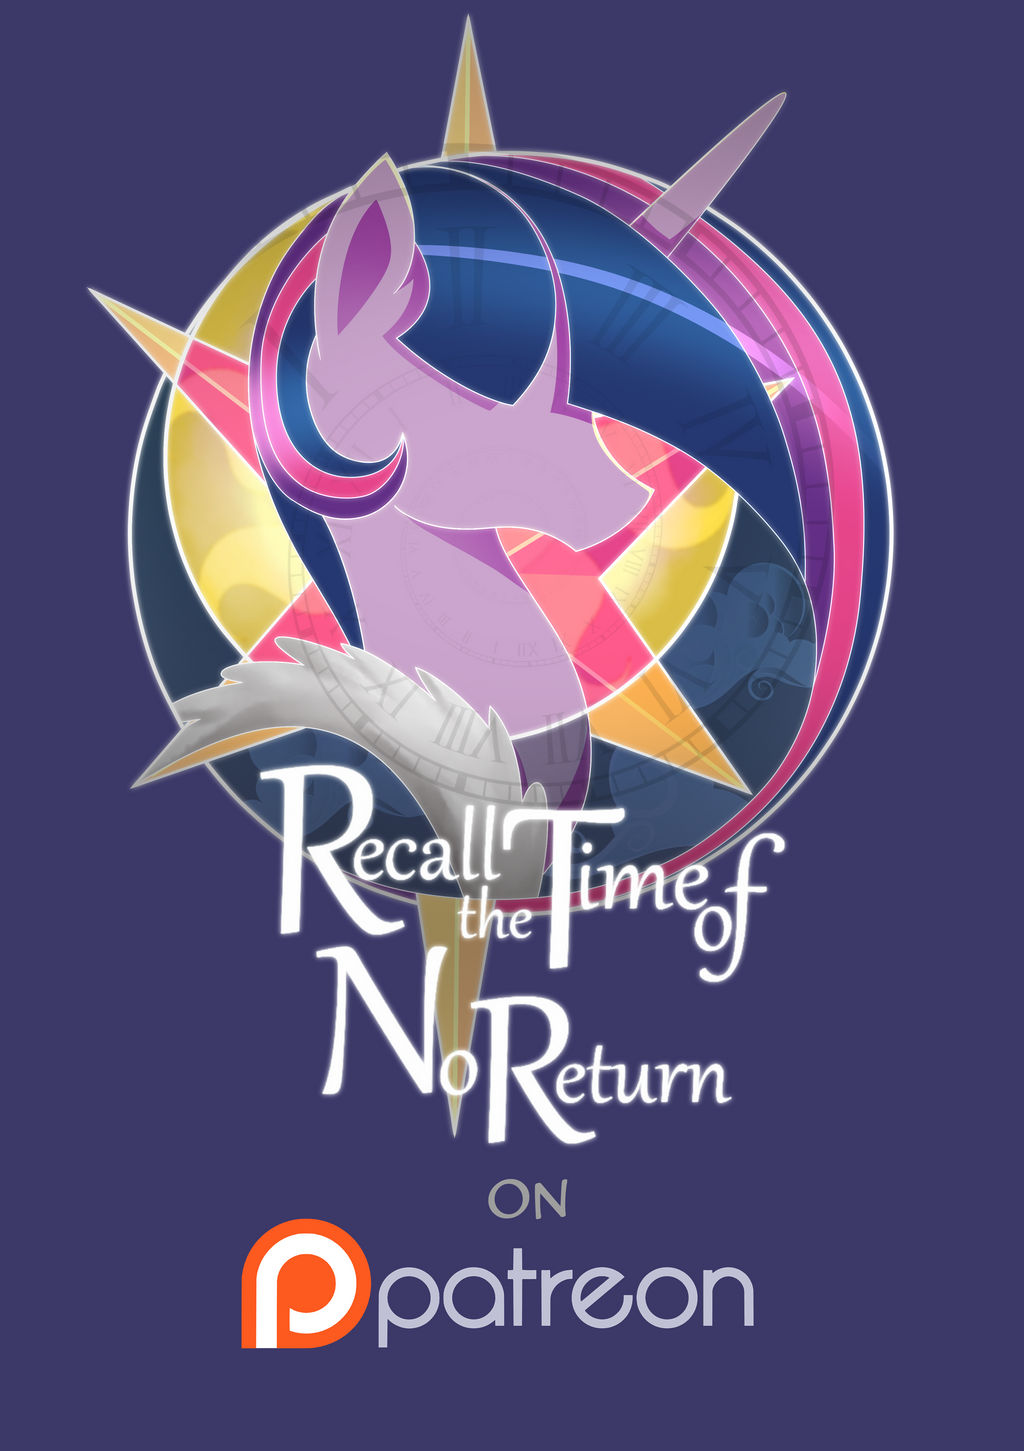 Recall the Time of No Return _ page link library